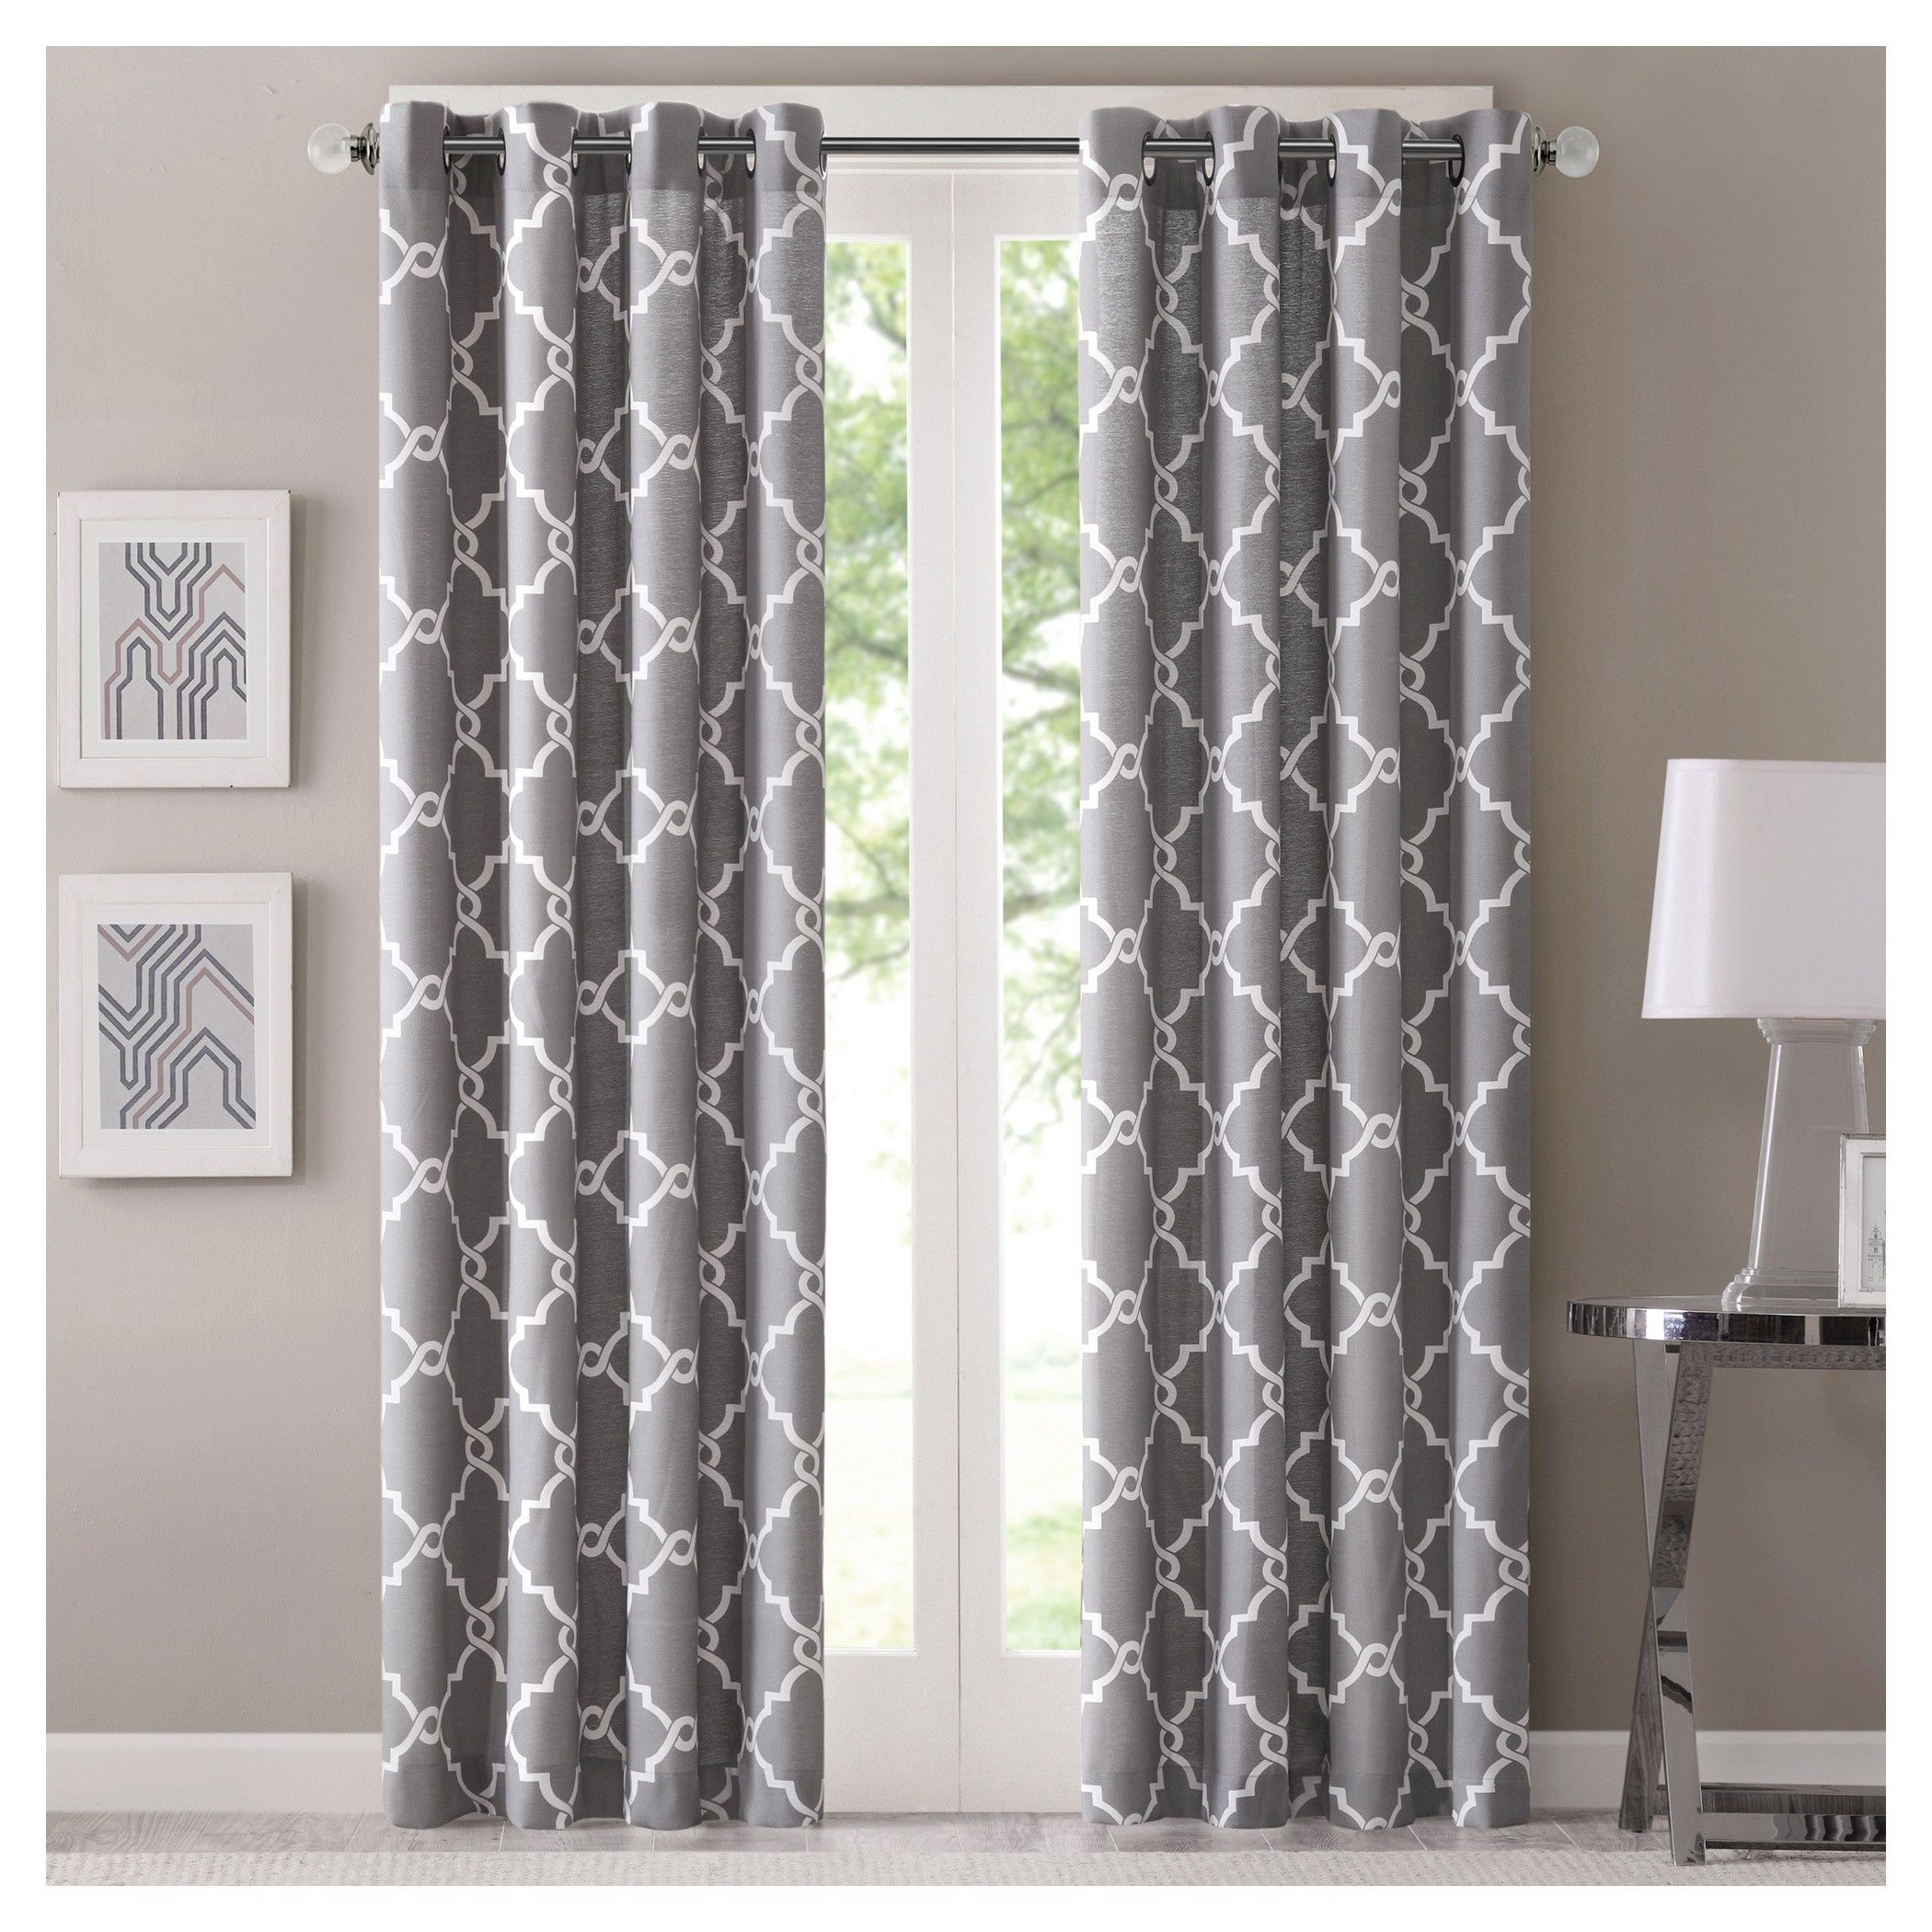 Target Bedroom Curtains Sereno Fretwork Print Curtain Panel Window Grey And Target